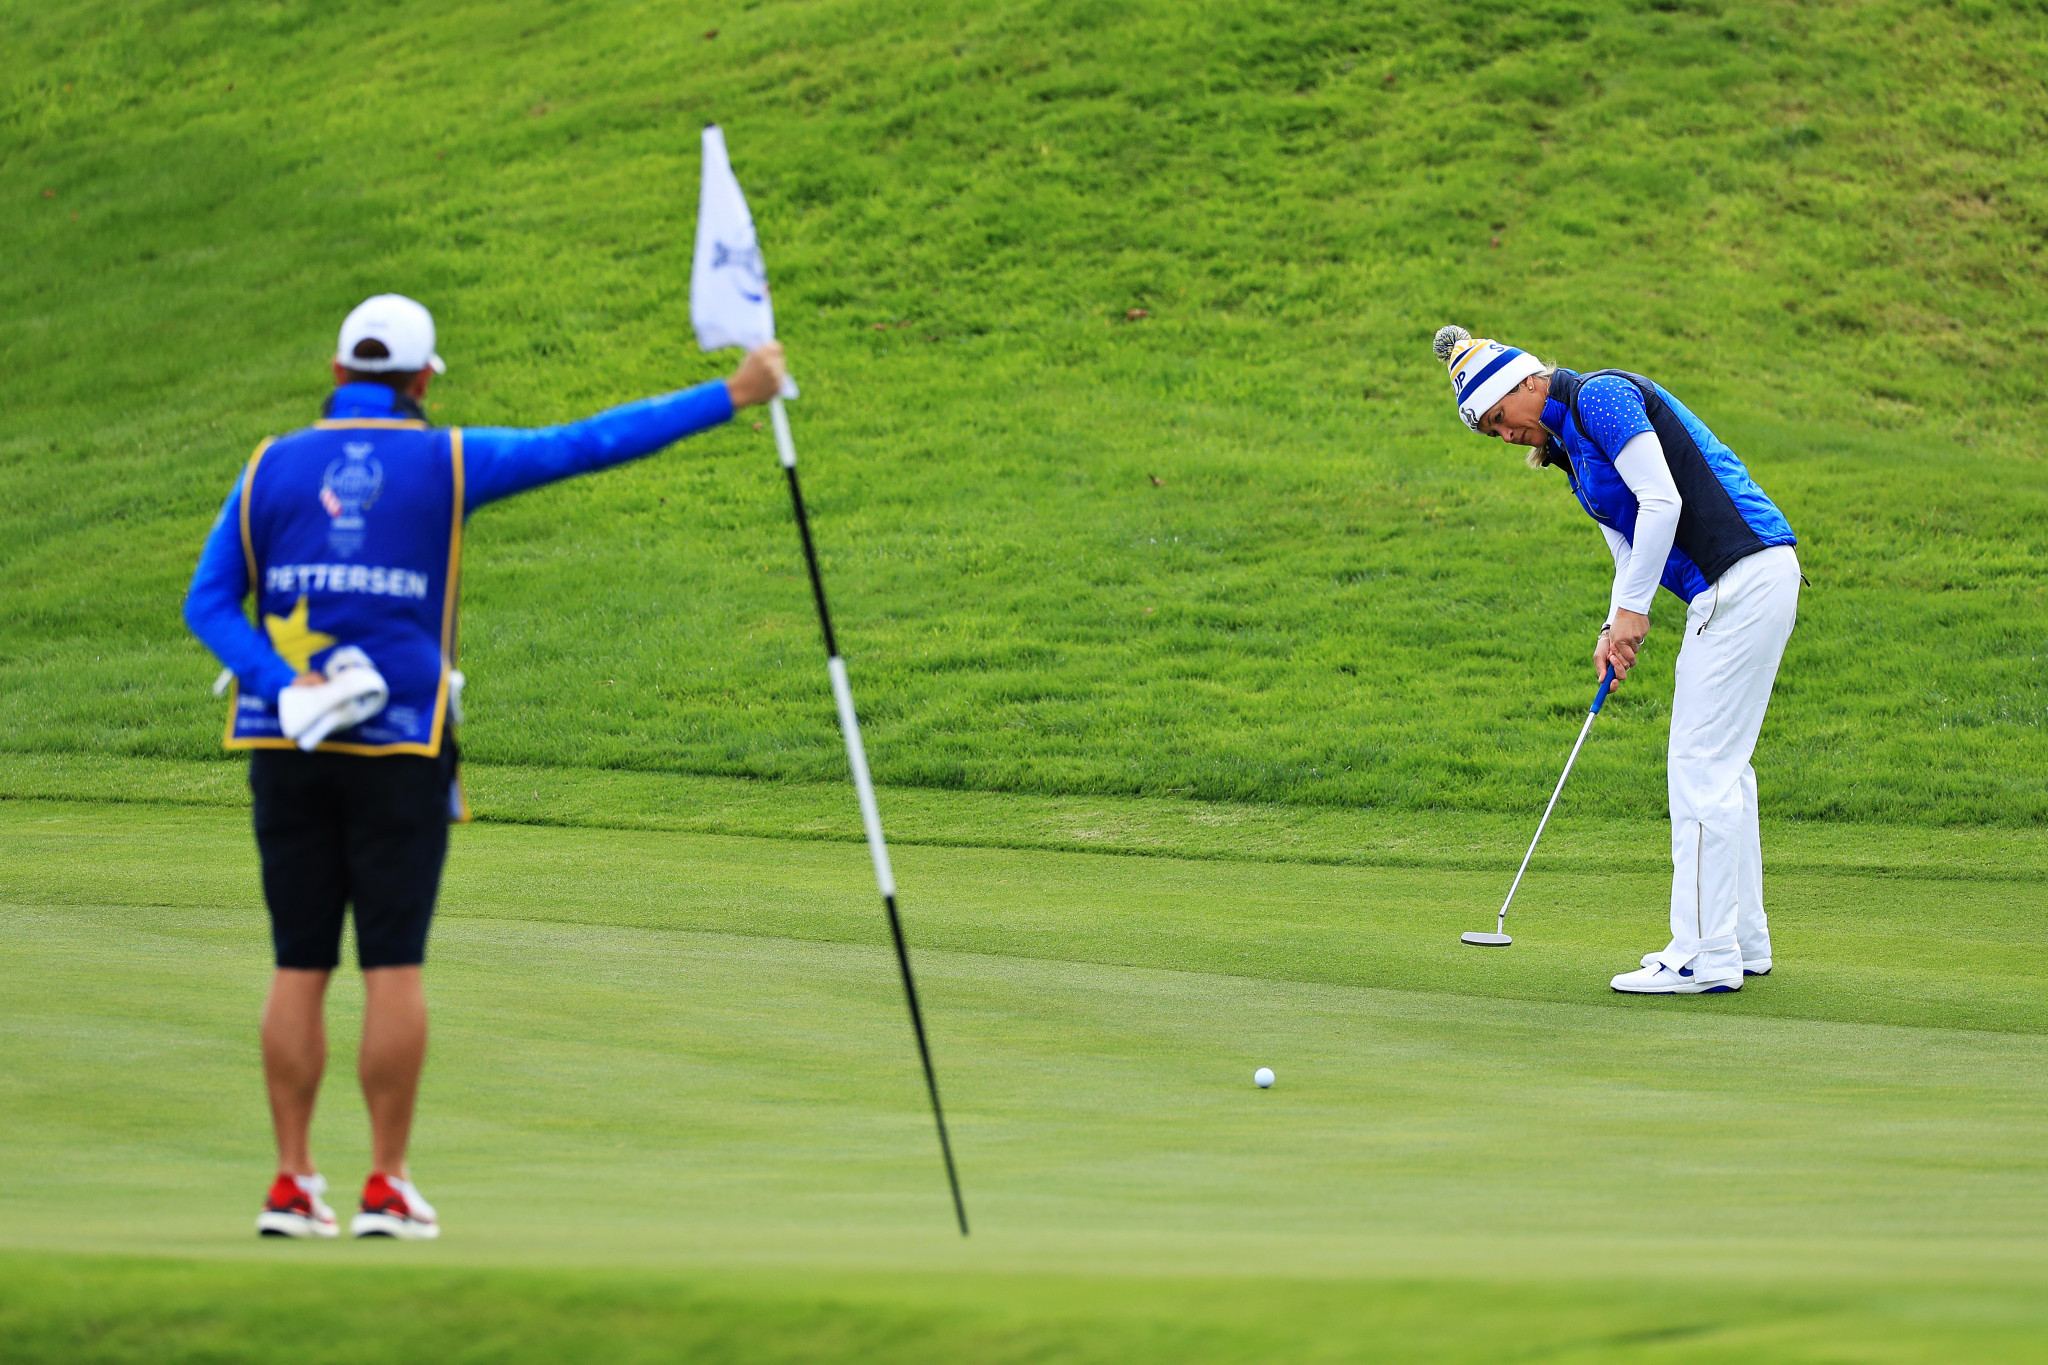 Europe regain Solheim Cup with dramatic victory over United States